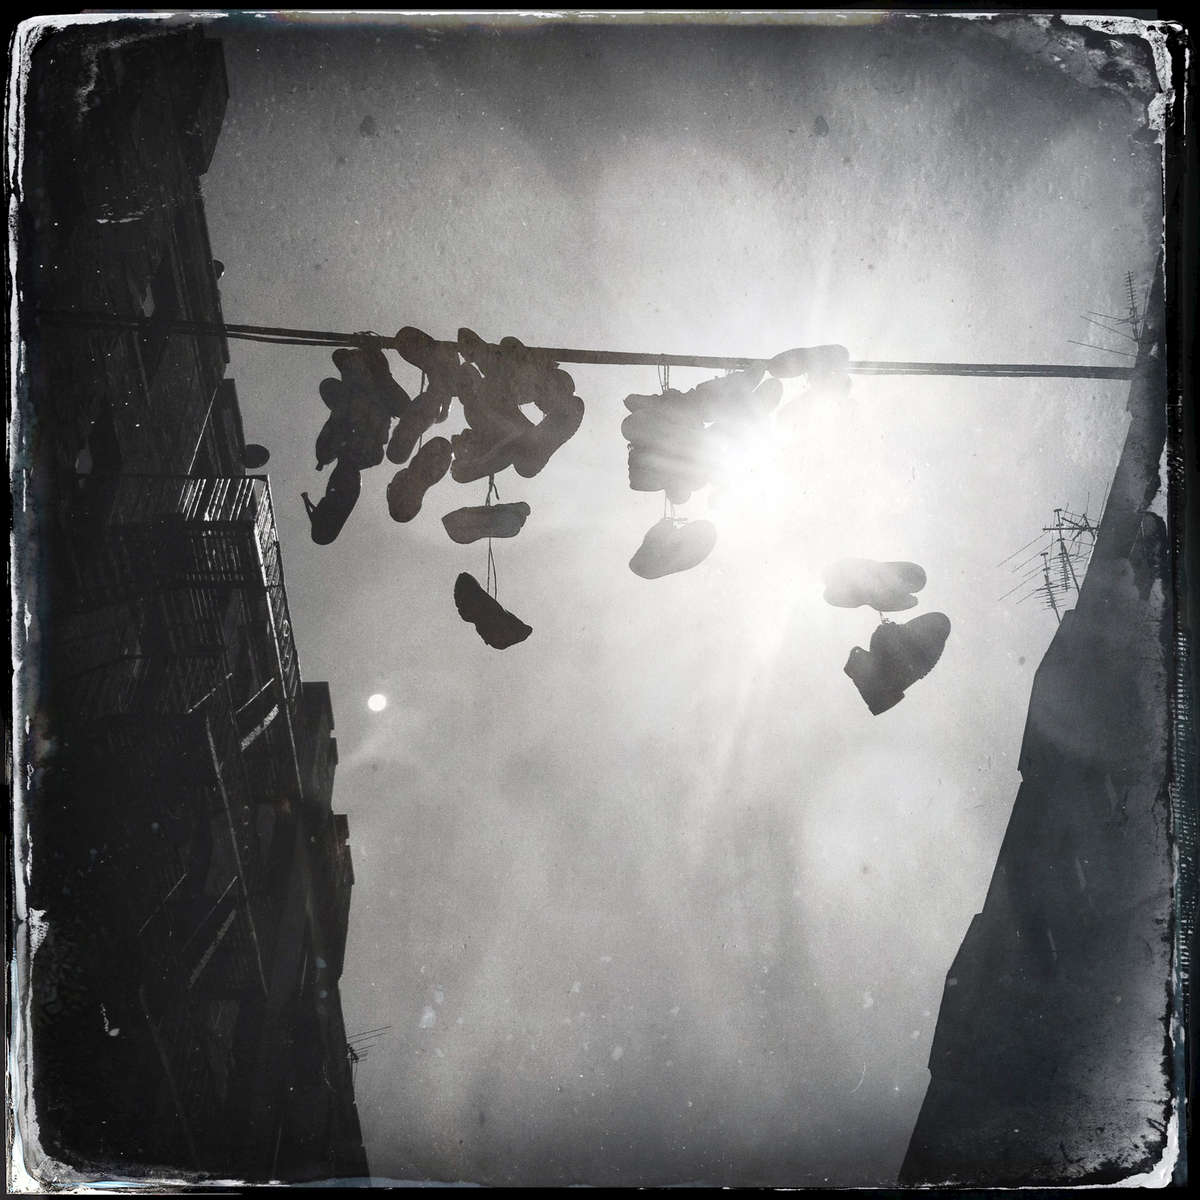 Shoes dangling in an alley -- South Bronx, Aug. 2013.